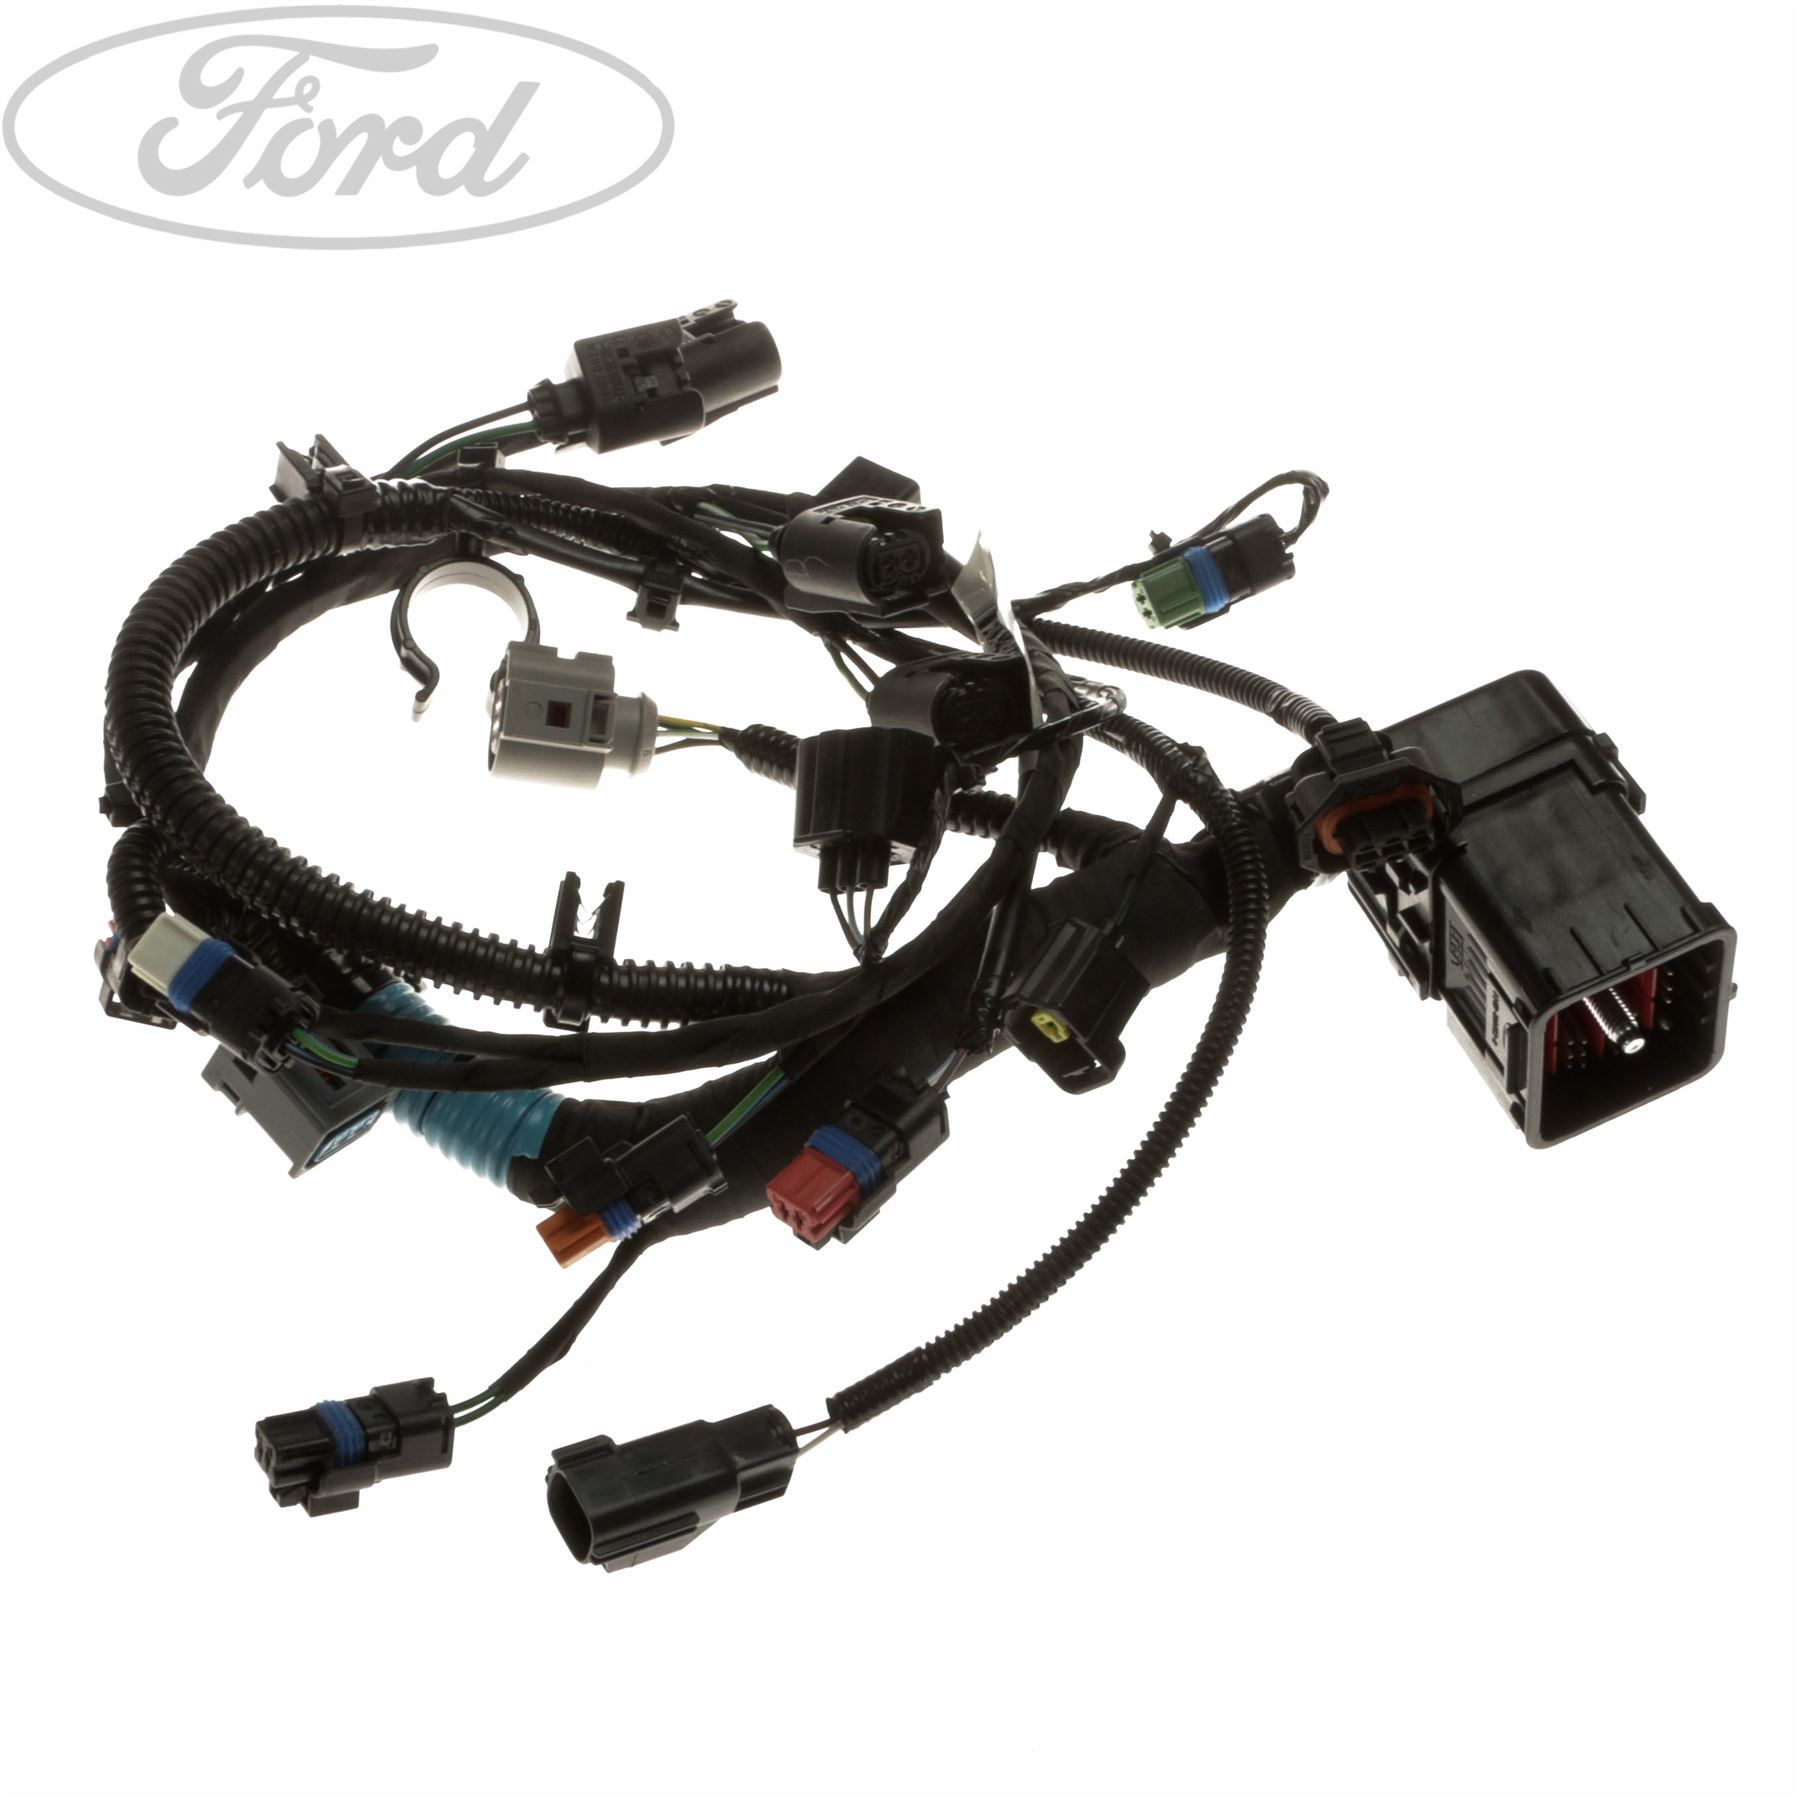 Genuine Ford Transit Connect Tdci Engine Wiring Loom 5236399 Ebay